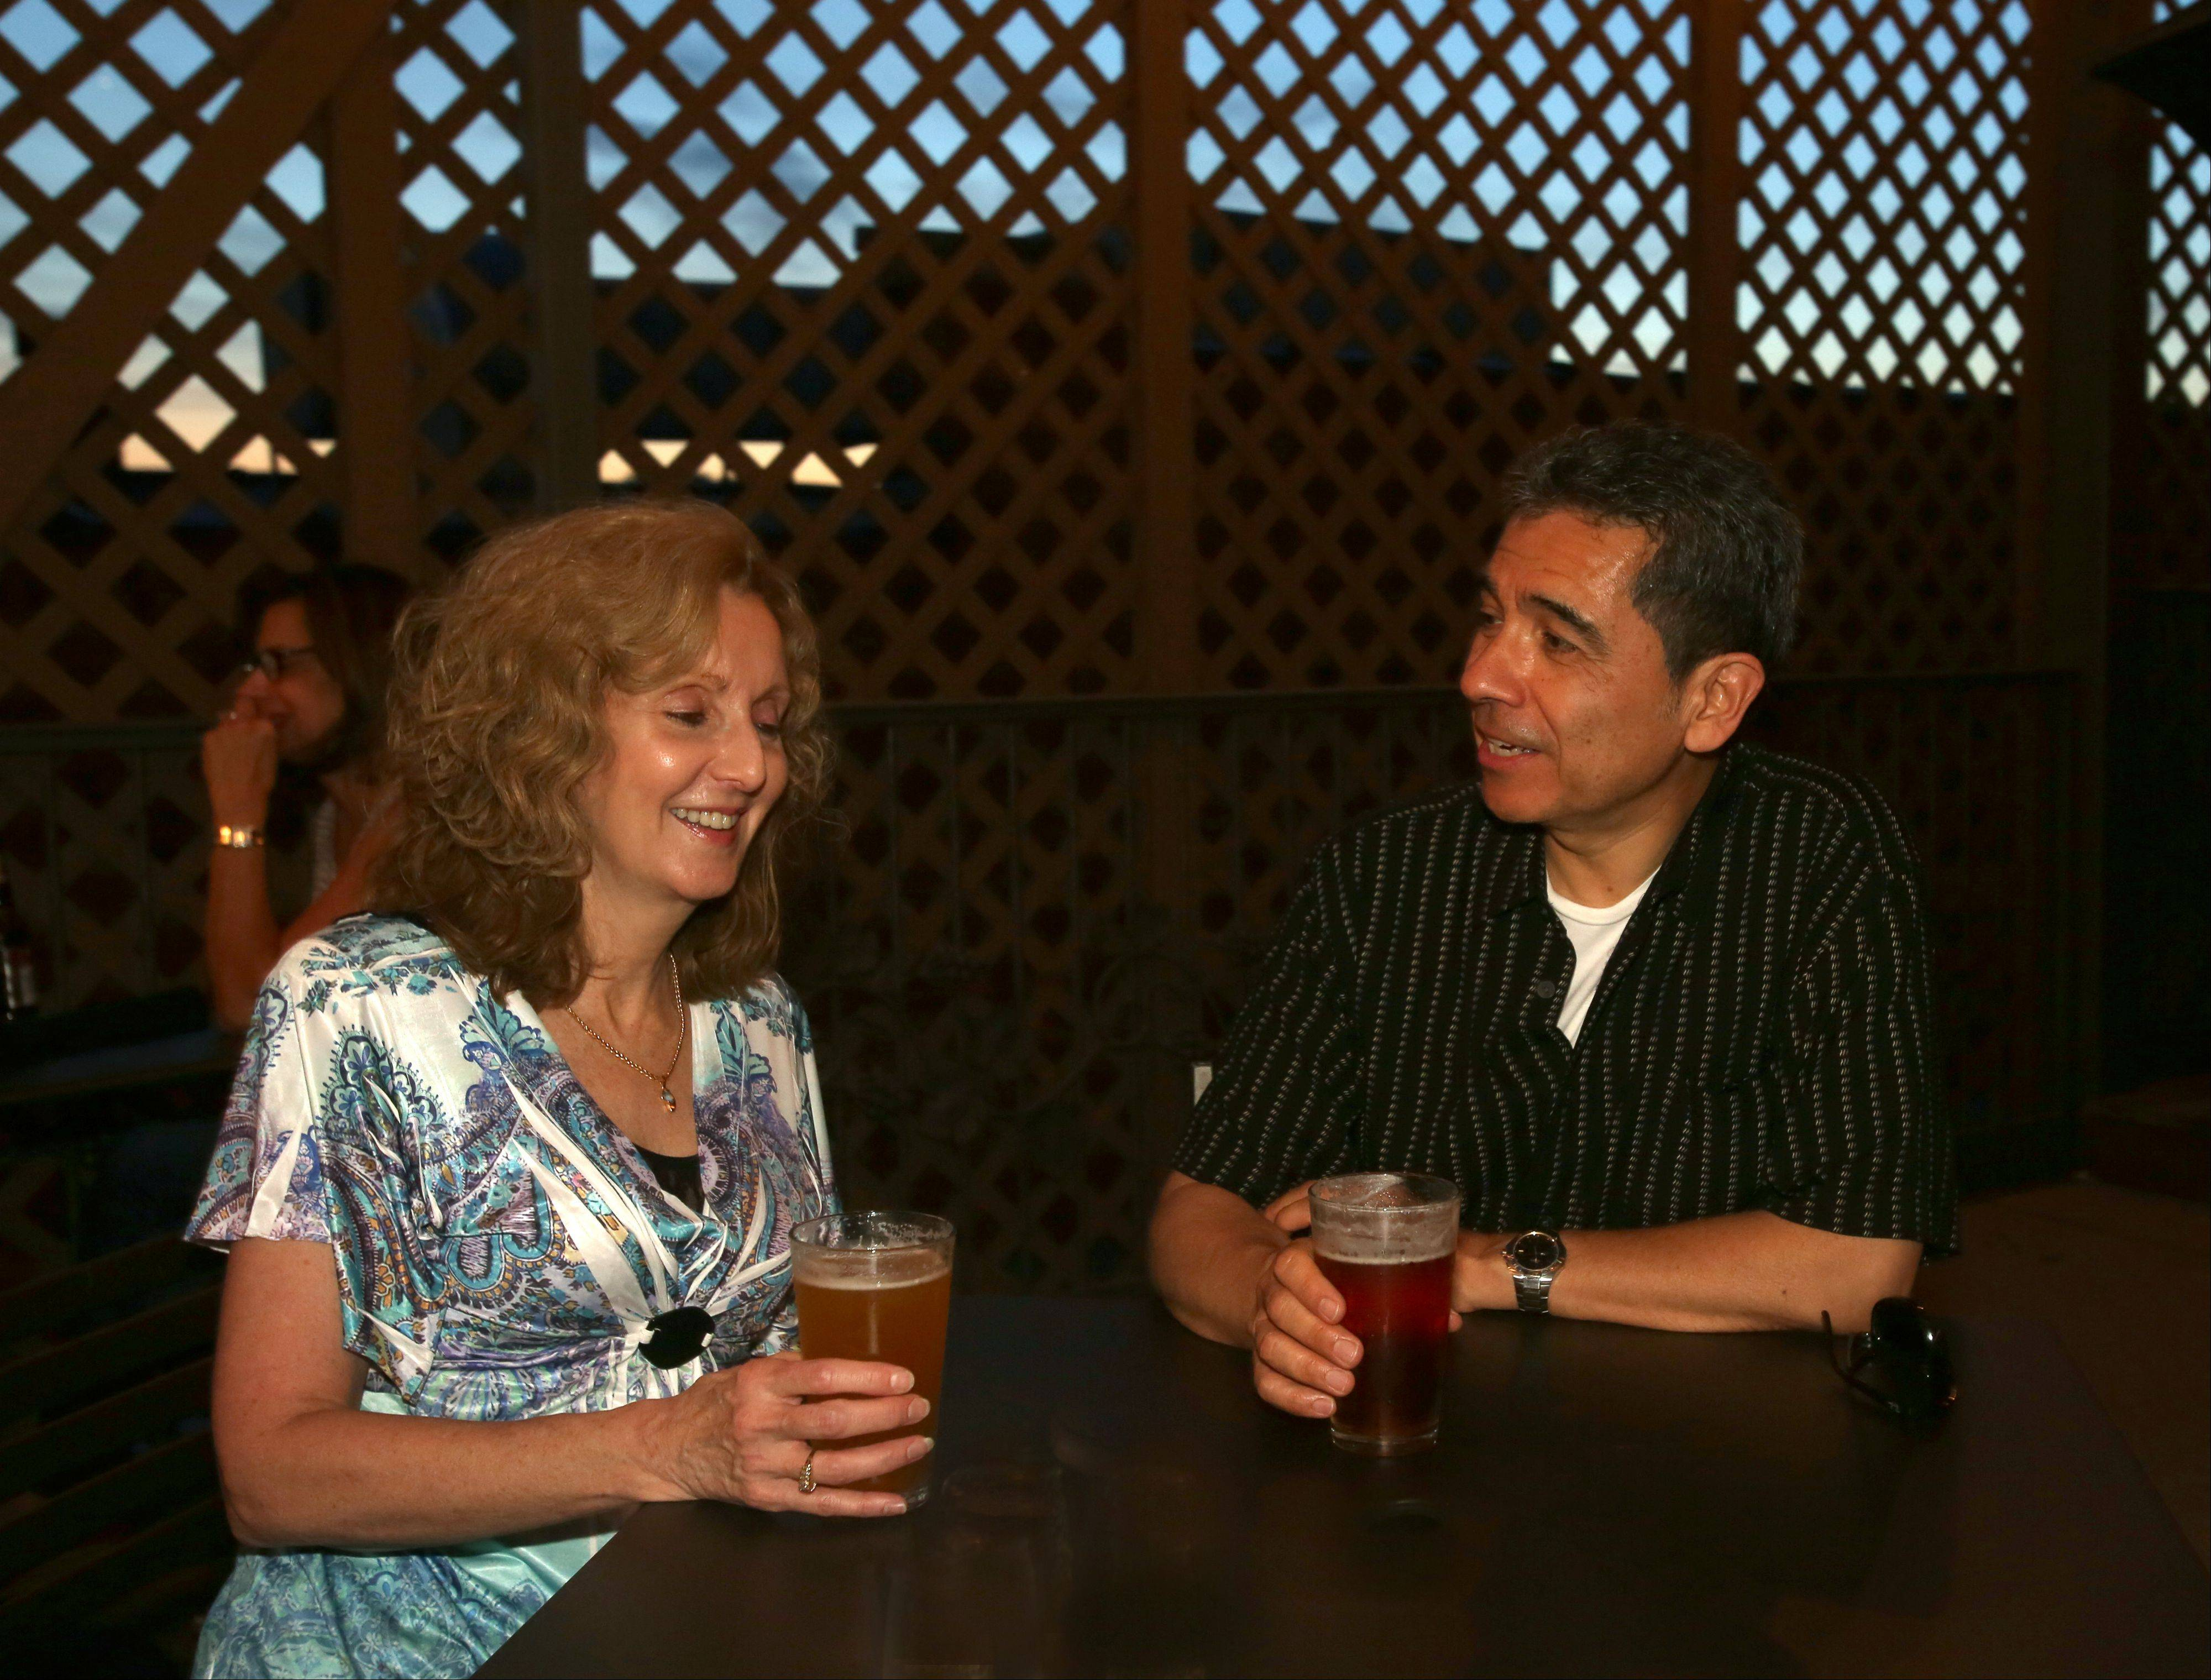 Debbie and Steve Orozco of Naperville enjoy a drink at Wise Boxer.